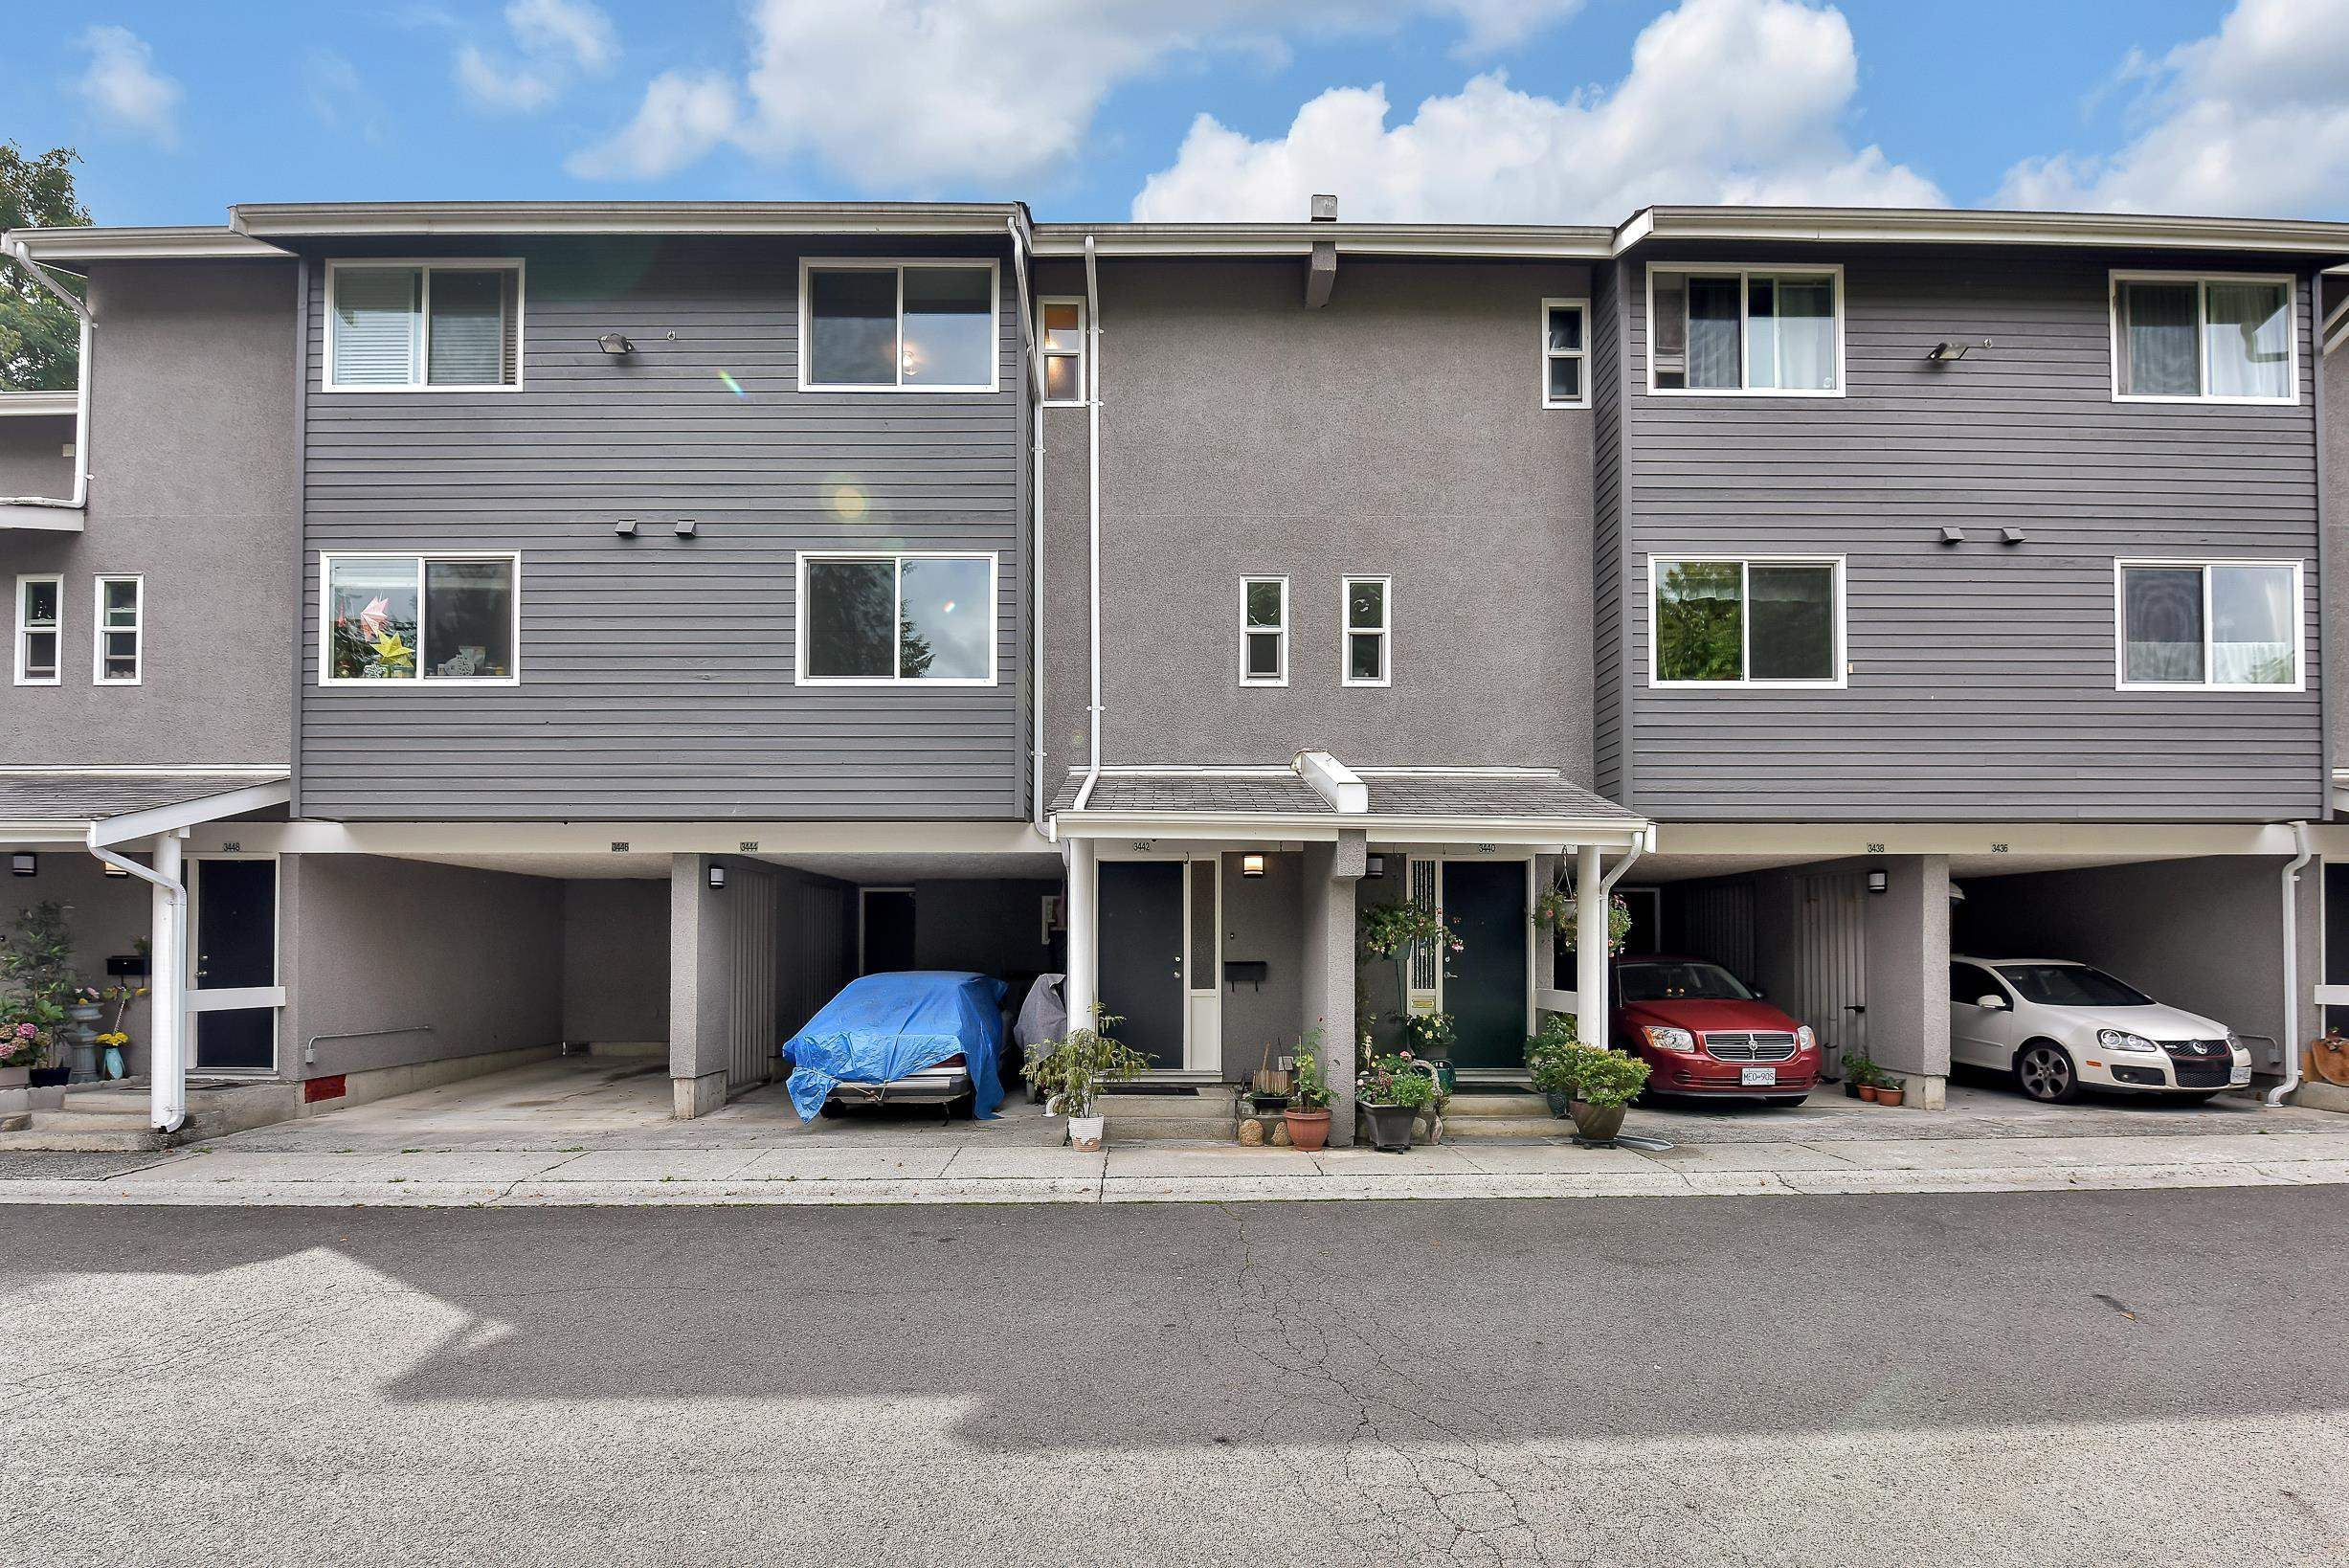 Main Photo: 3442 COPELAND Avenue in Vancouver: Champlain Heights Townhouse for sale (Vancouver East)  : MLS®# R2611646